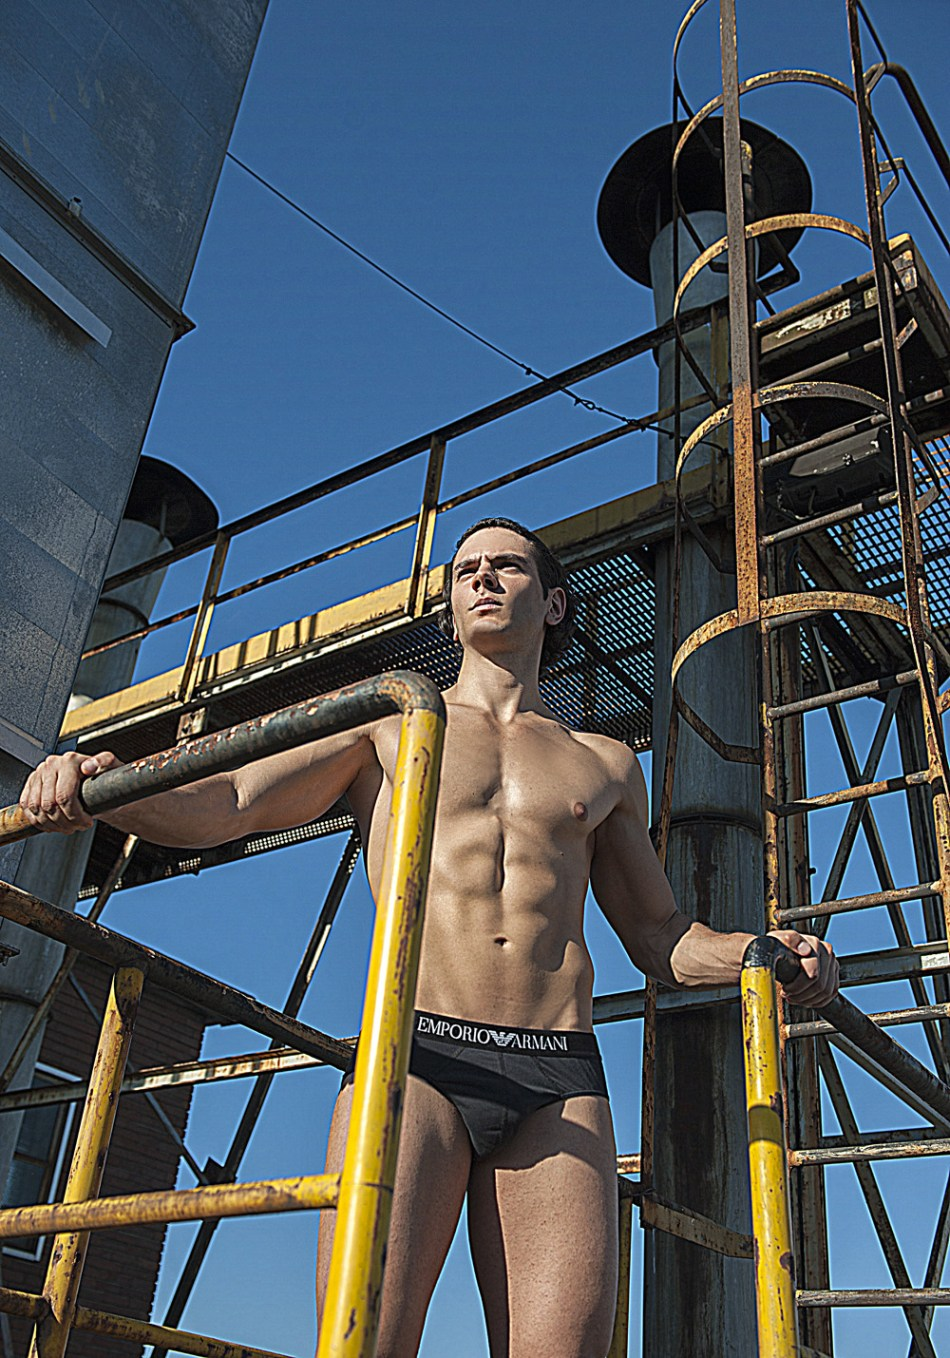 It is my pleasure to presents Boys Factory: Matteo Cupelli #002 by Daniel Rodrigues